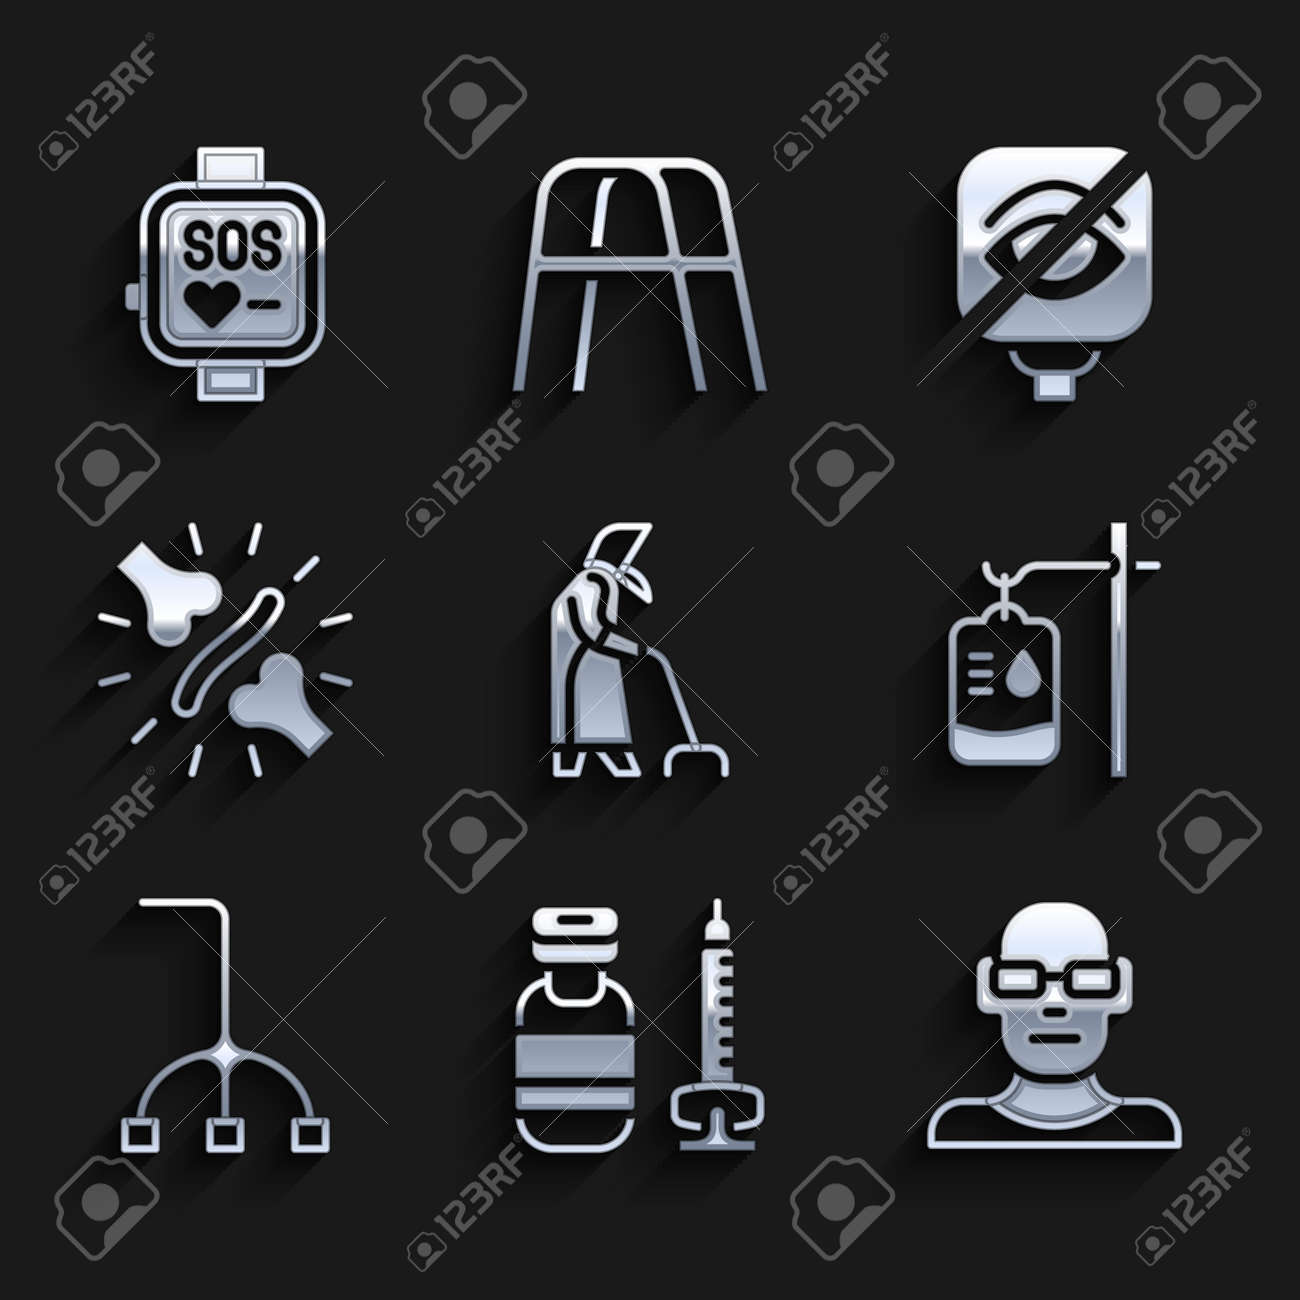 Set Grandmother, Syringe, Poor eyesight, IV bag, Walking stick cane, Joint pain, knee pain, Blindness and Smart watch icon. Vector - 173396211